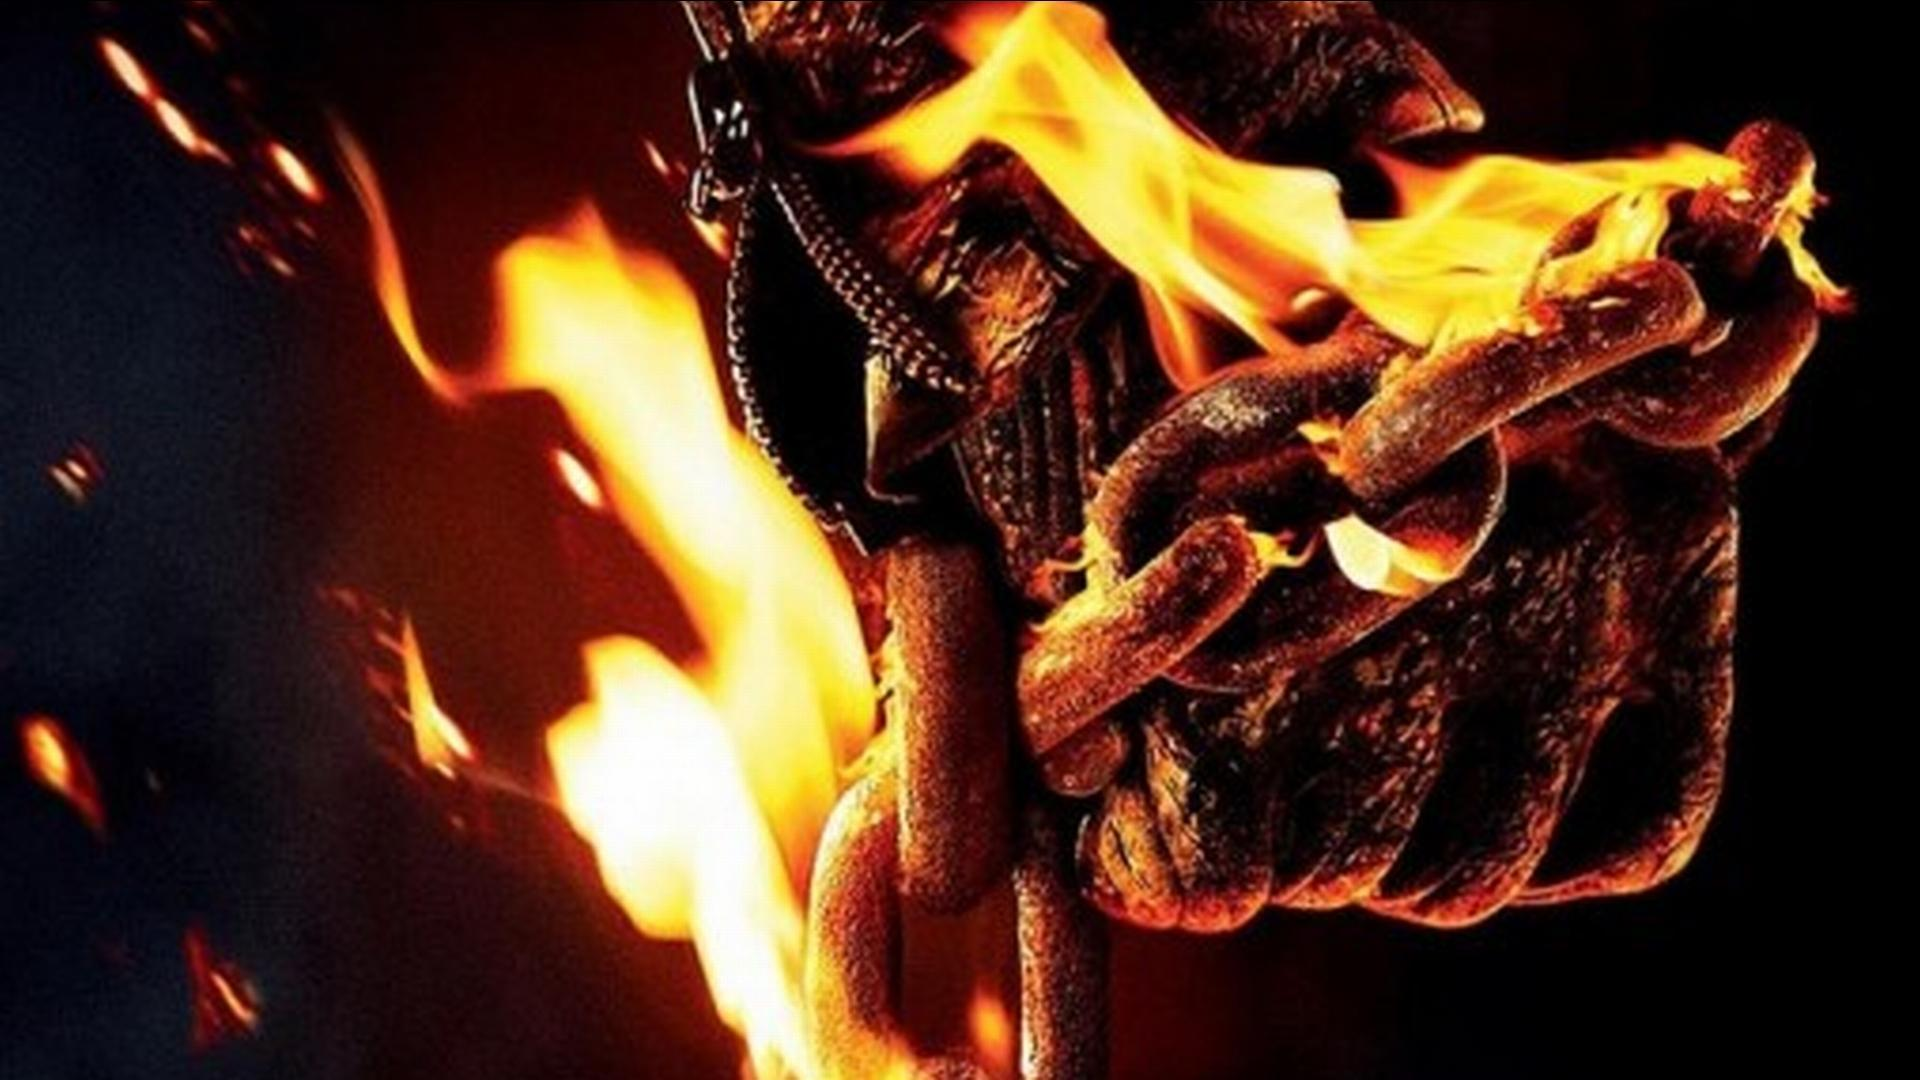 ghost rider wallpaper bike - photo #12